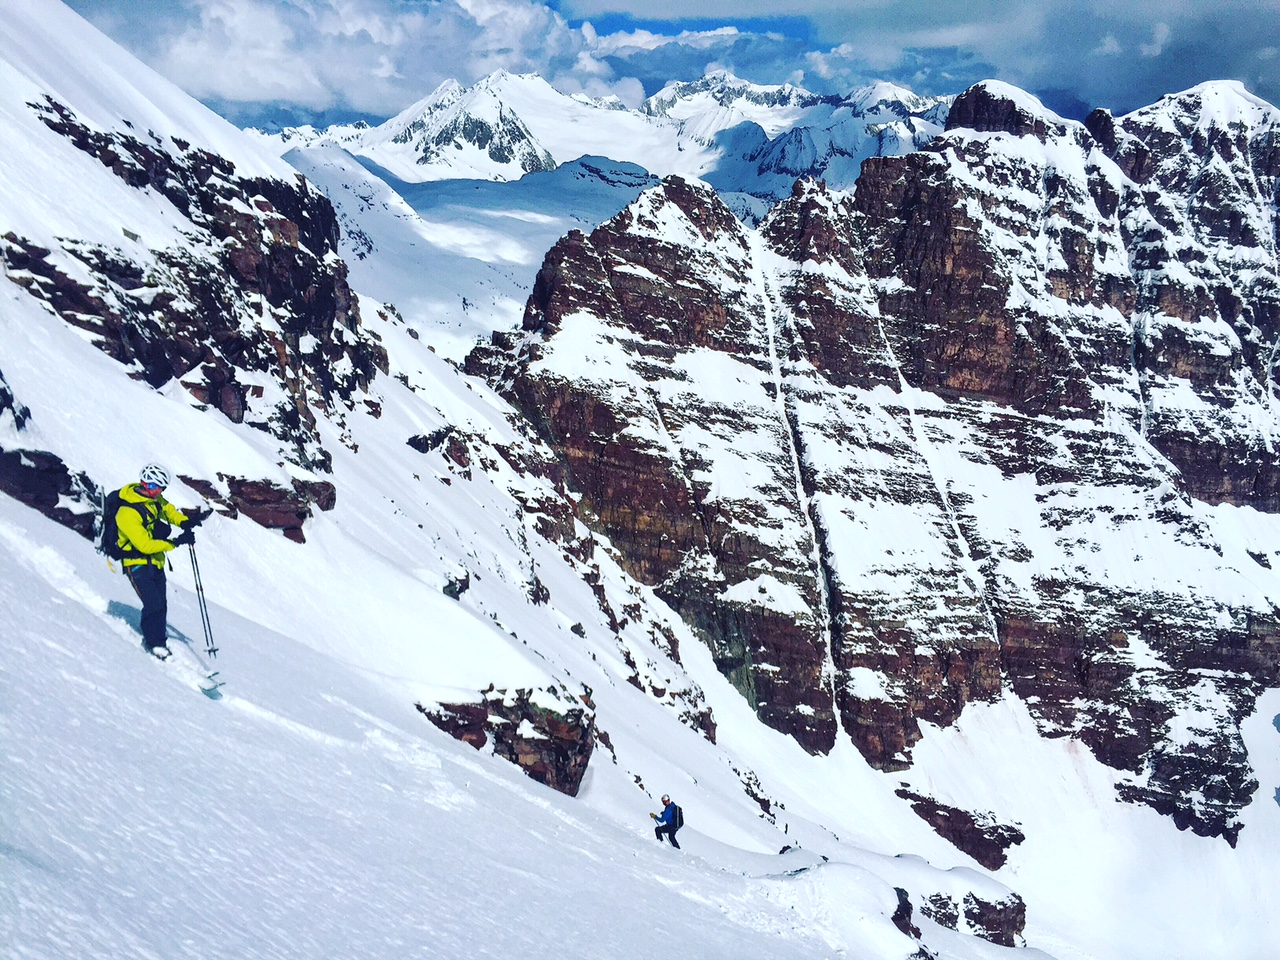 Halfway down the face, traversing the ledges in good powder in most places.